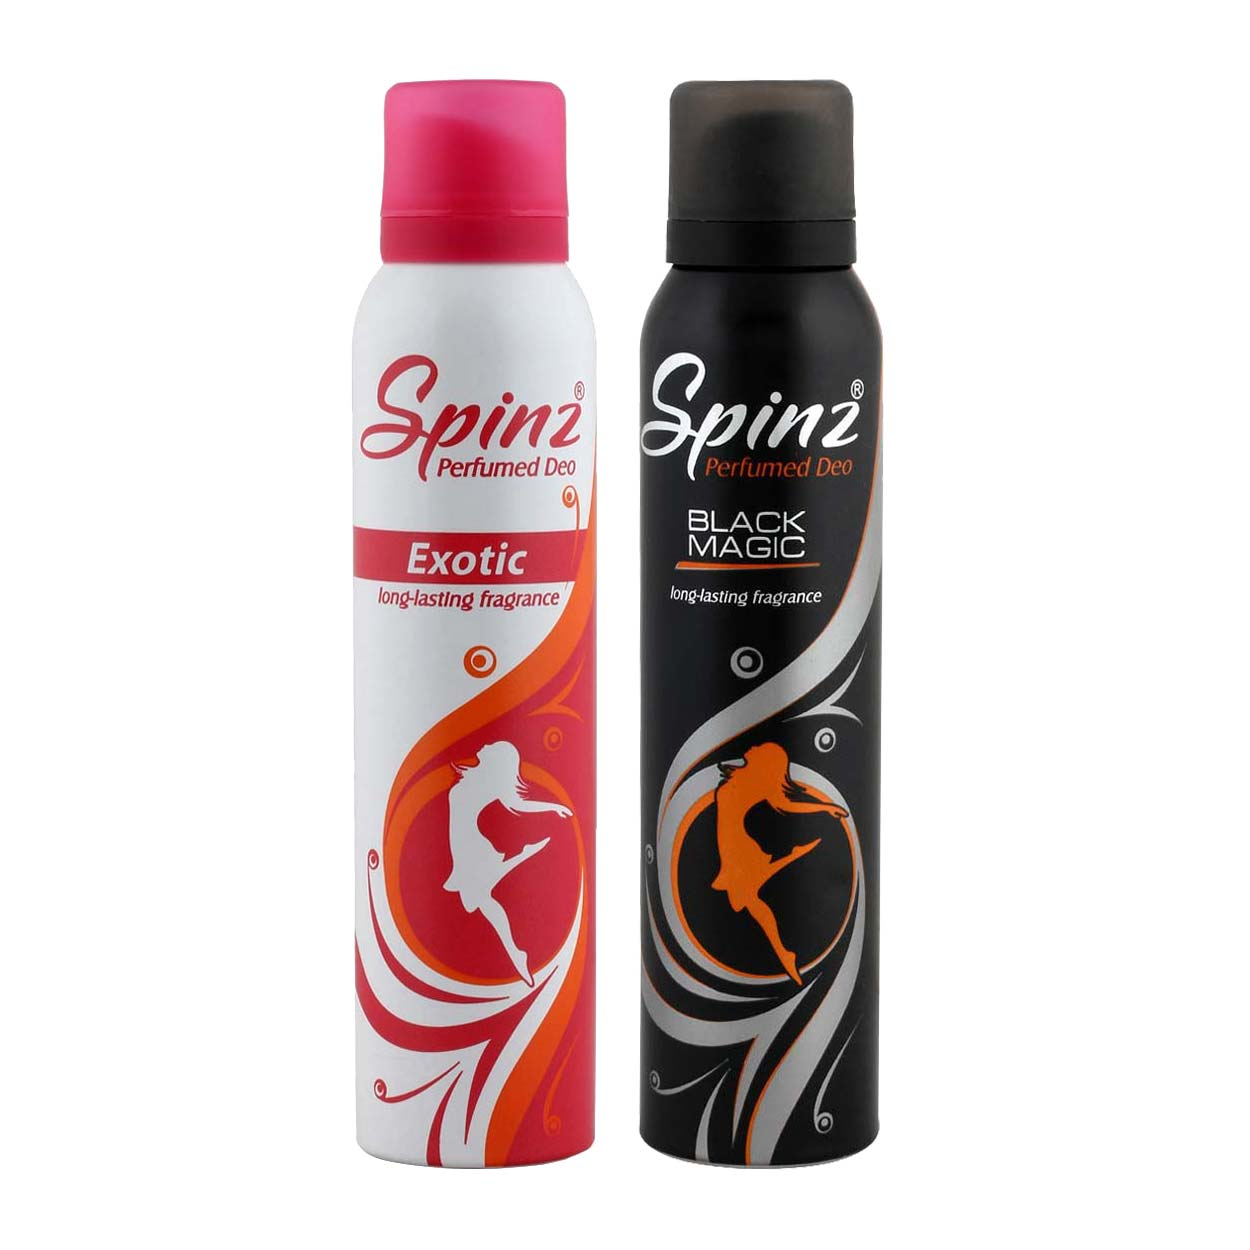 Spinz Exotic And Black Magic Pack Of 2 Deodorants